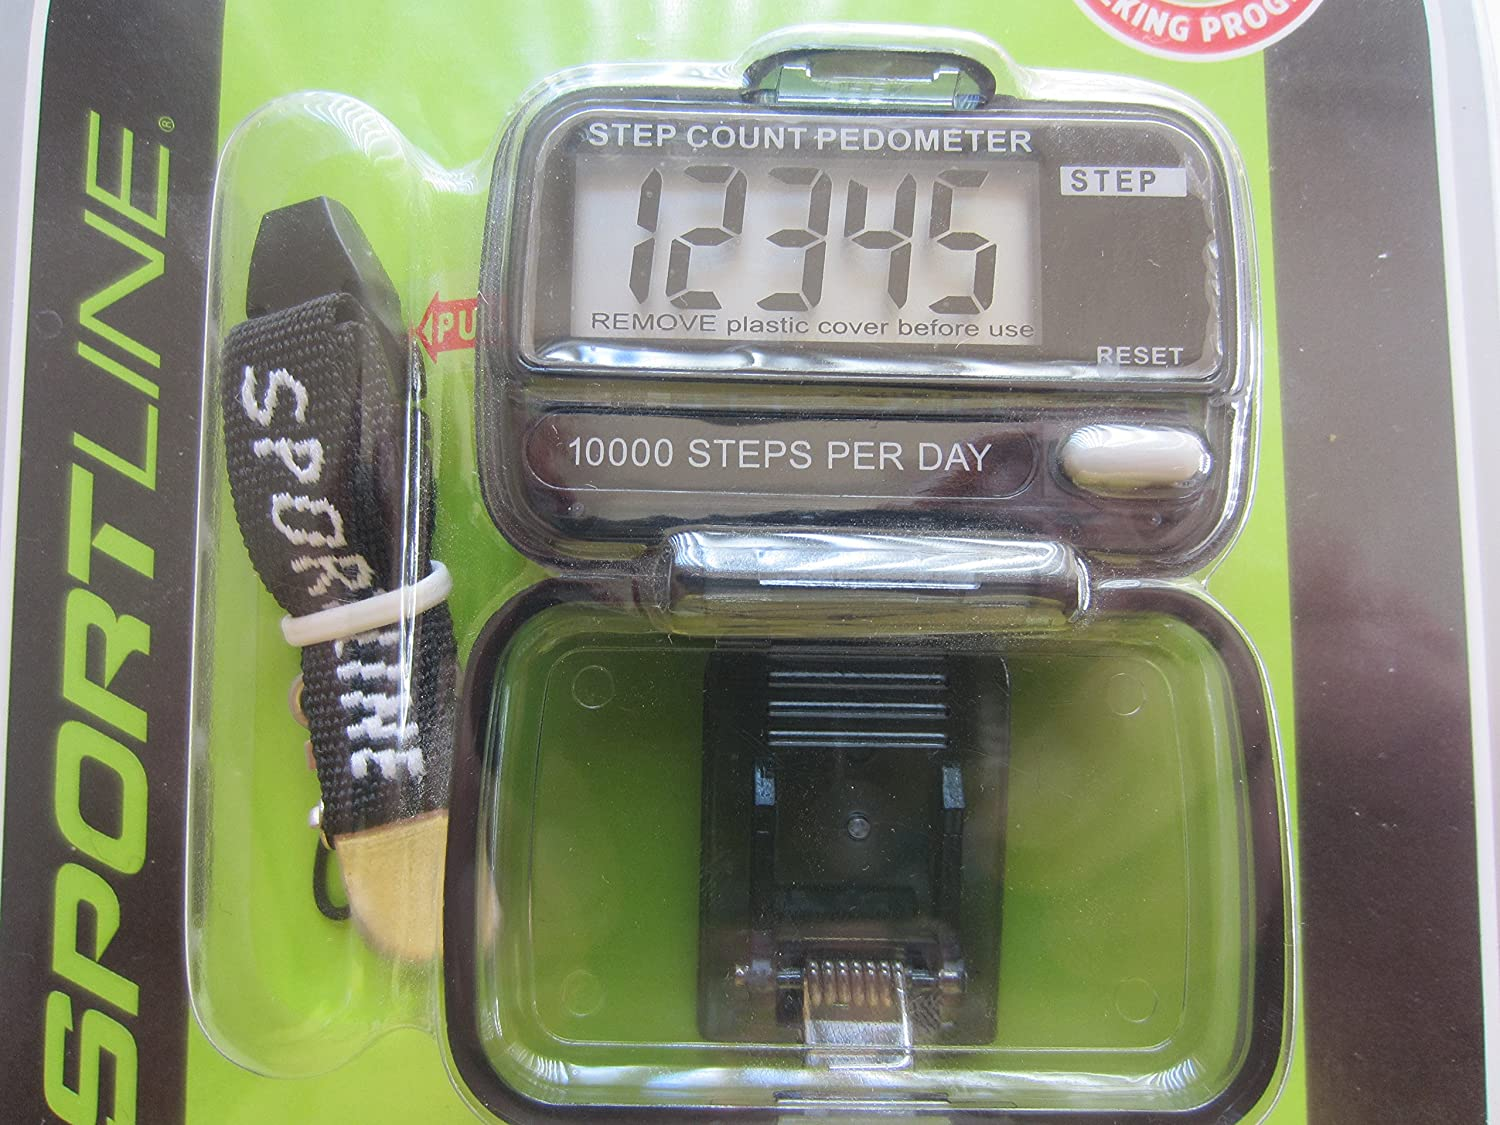 Sportline Step Counting Pedometer Walk Run Collection 10,000 Steps//Day Model # TG2793BK